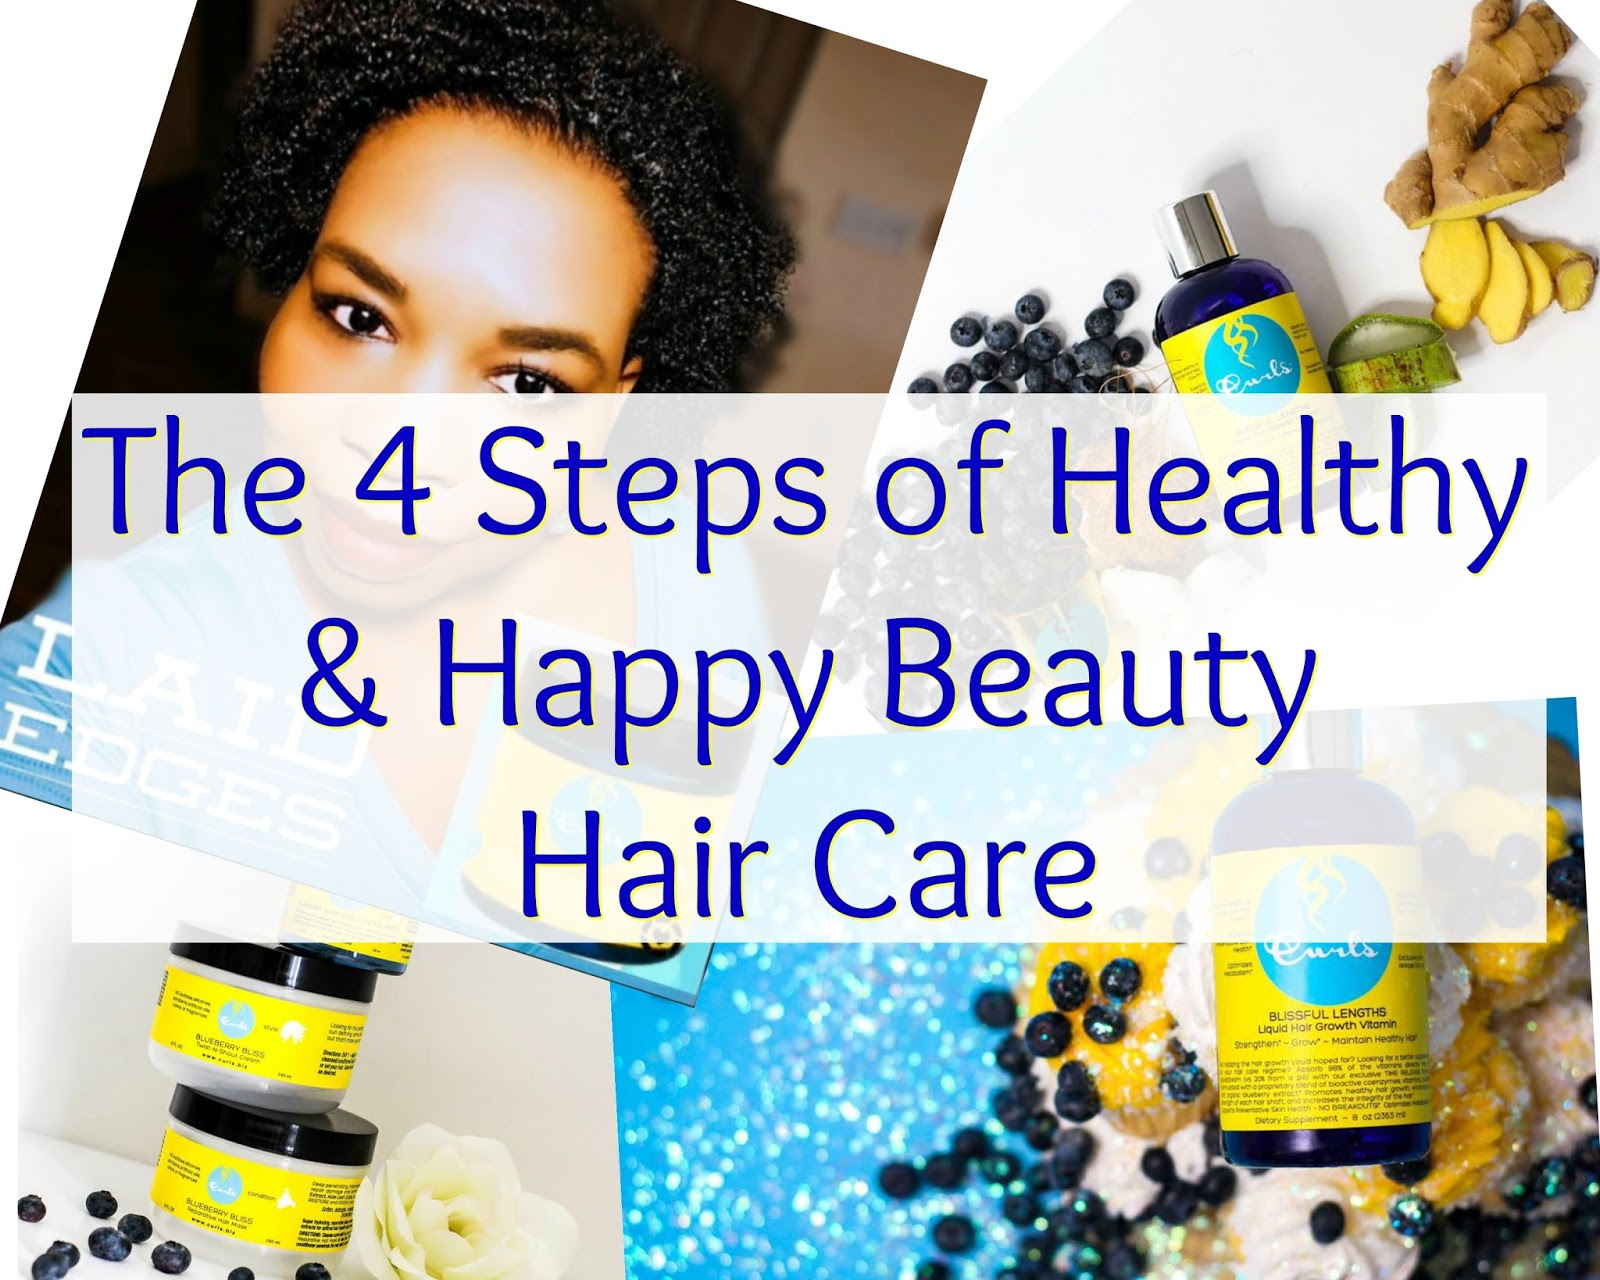 Click  here to check out all the products at Curls.biz!